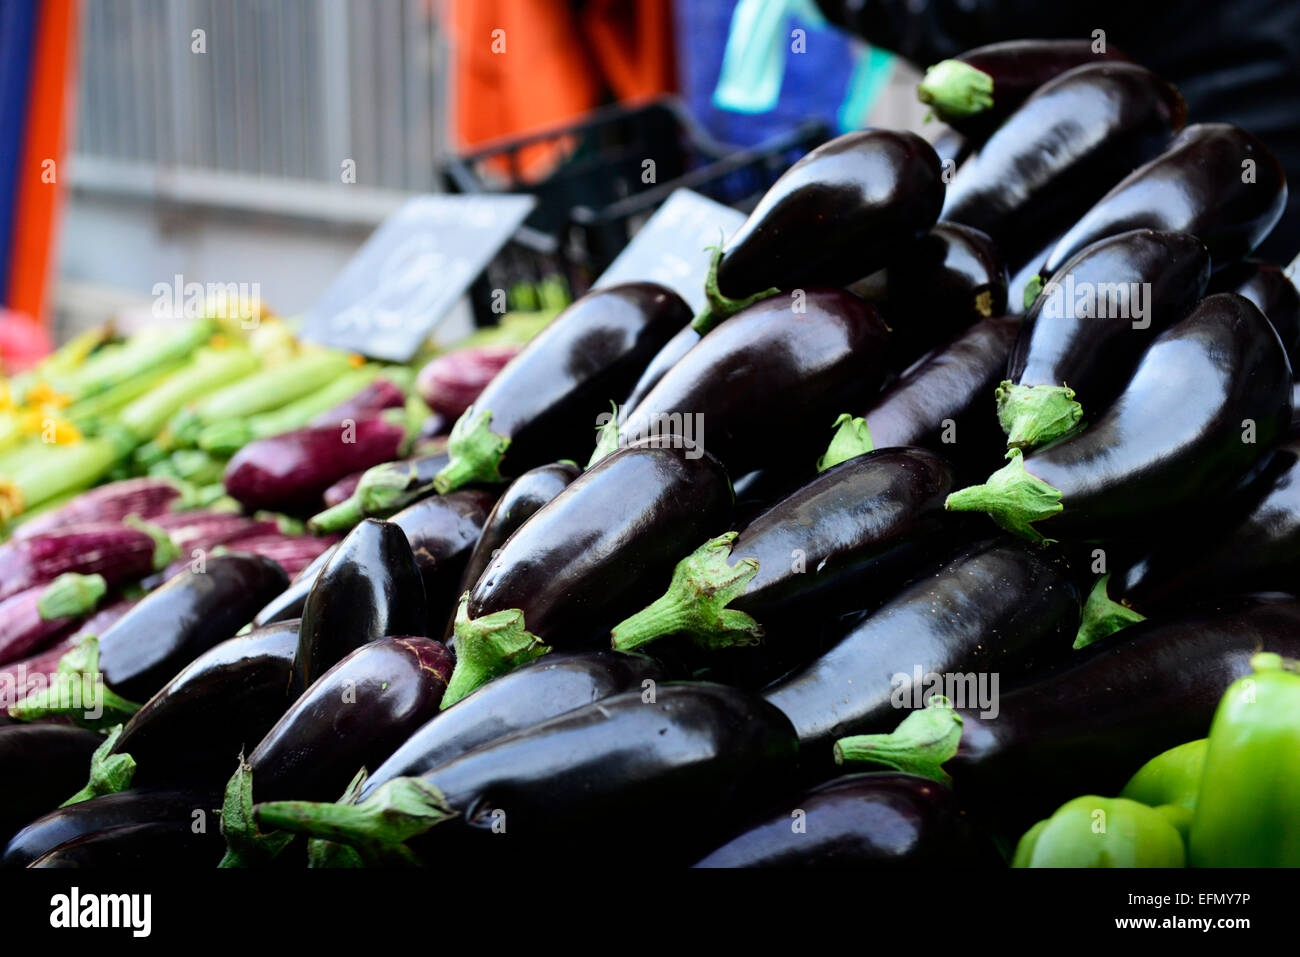 Fresh Eggplants from Crete sold in the vibrant markets of Athens. - Stock Image